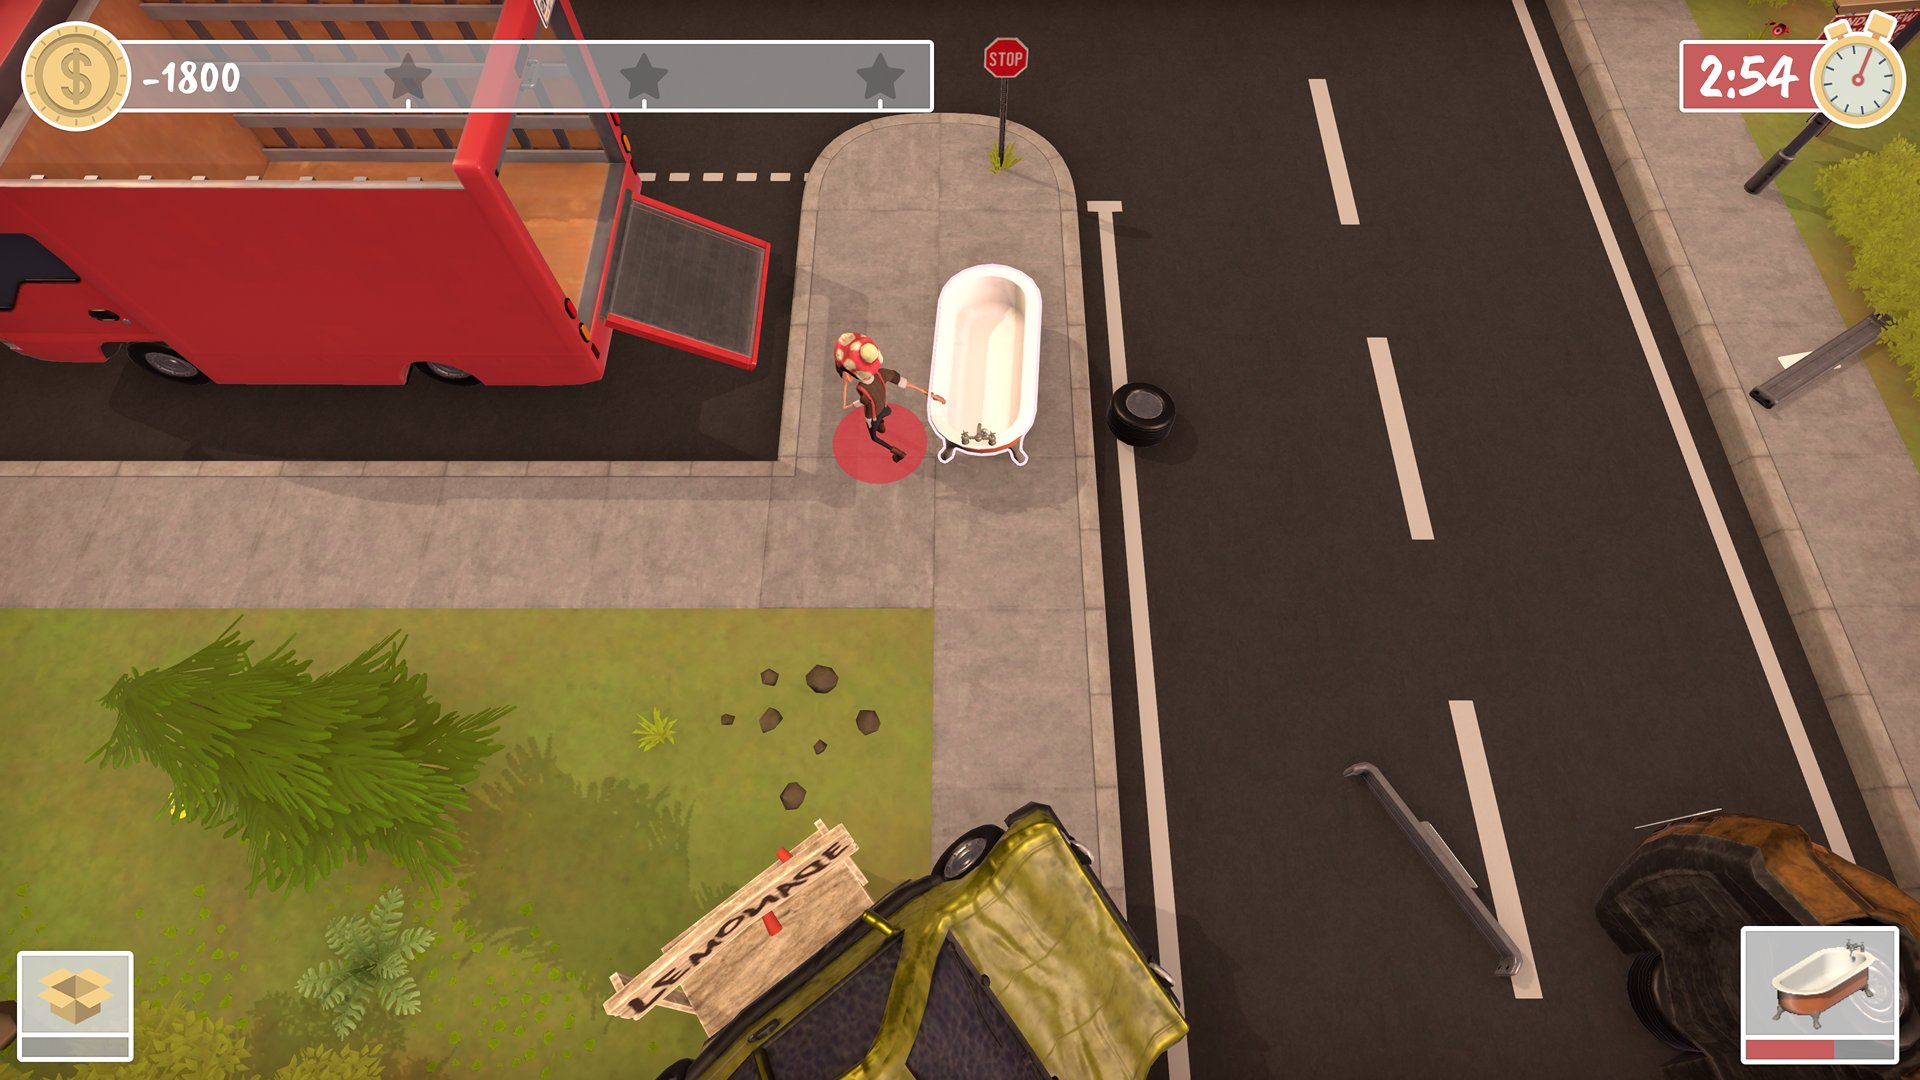 A screenshot from Get Packed, you're dragging a bath tub across a suburban street, towards the removal van.